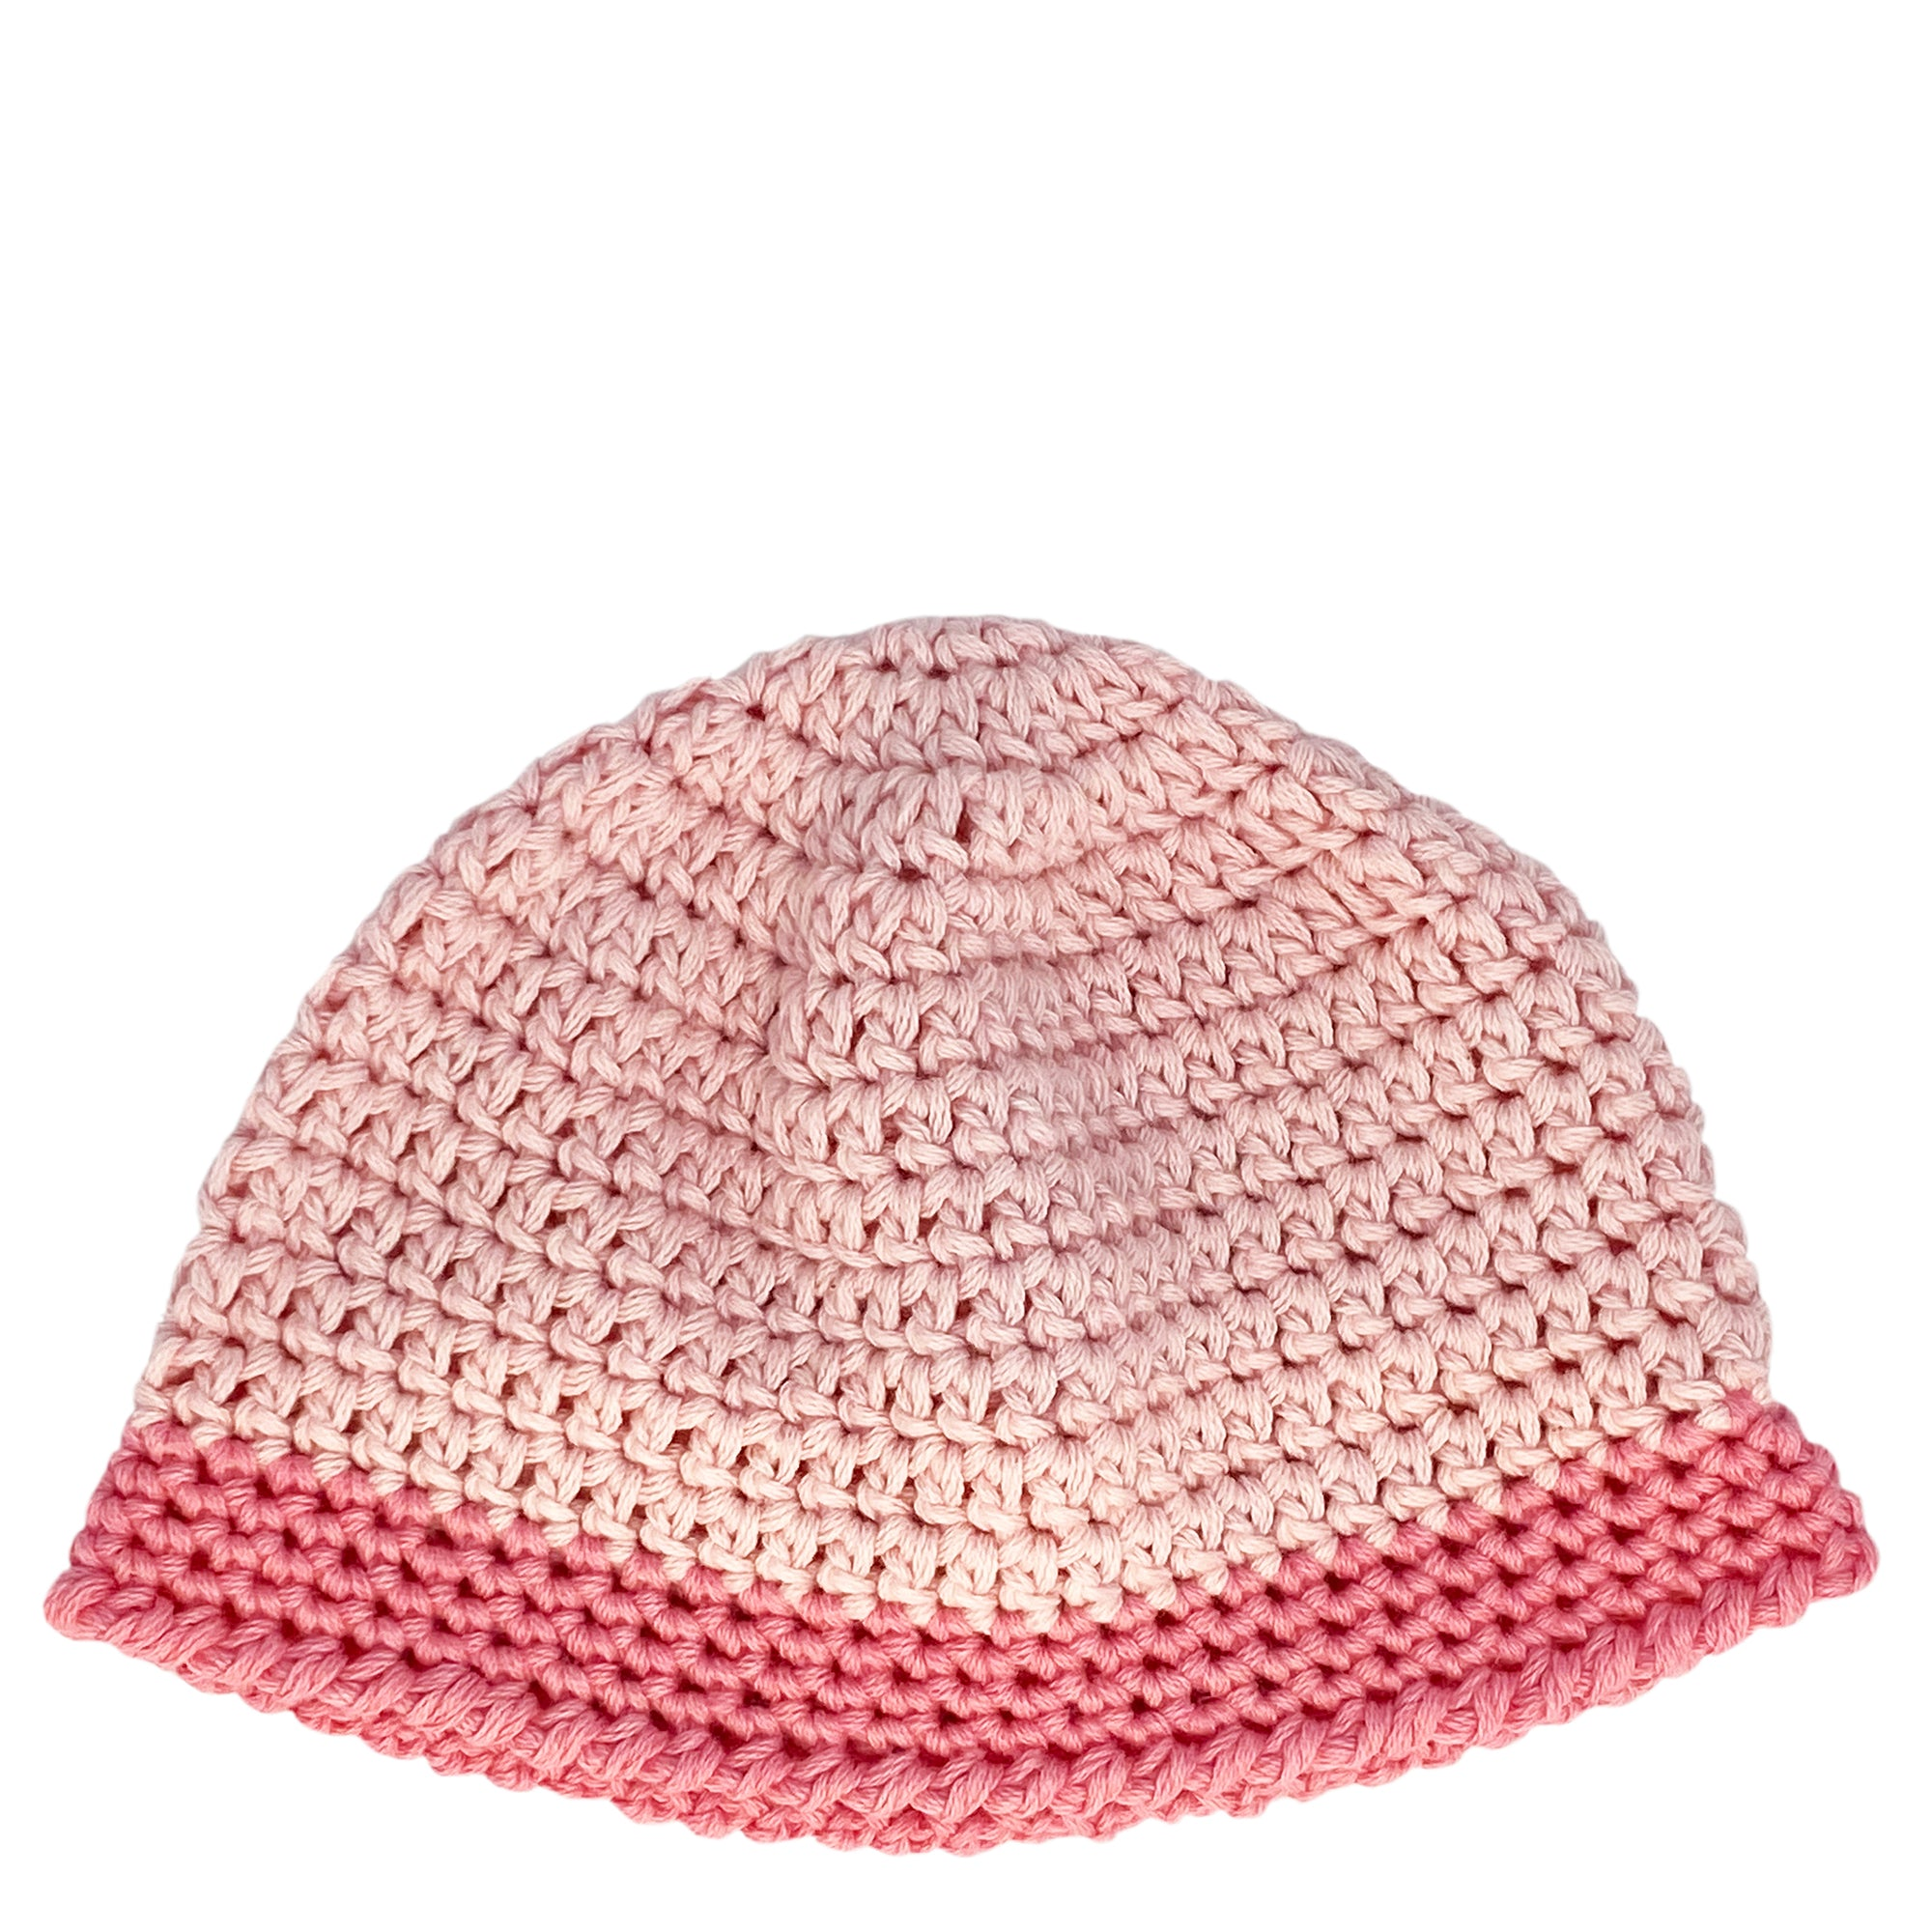 hand crocheted baby beanie in pink